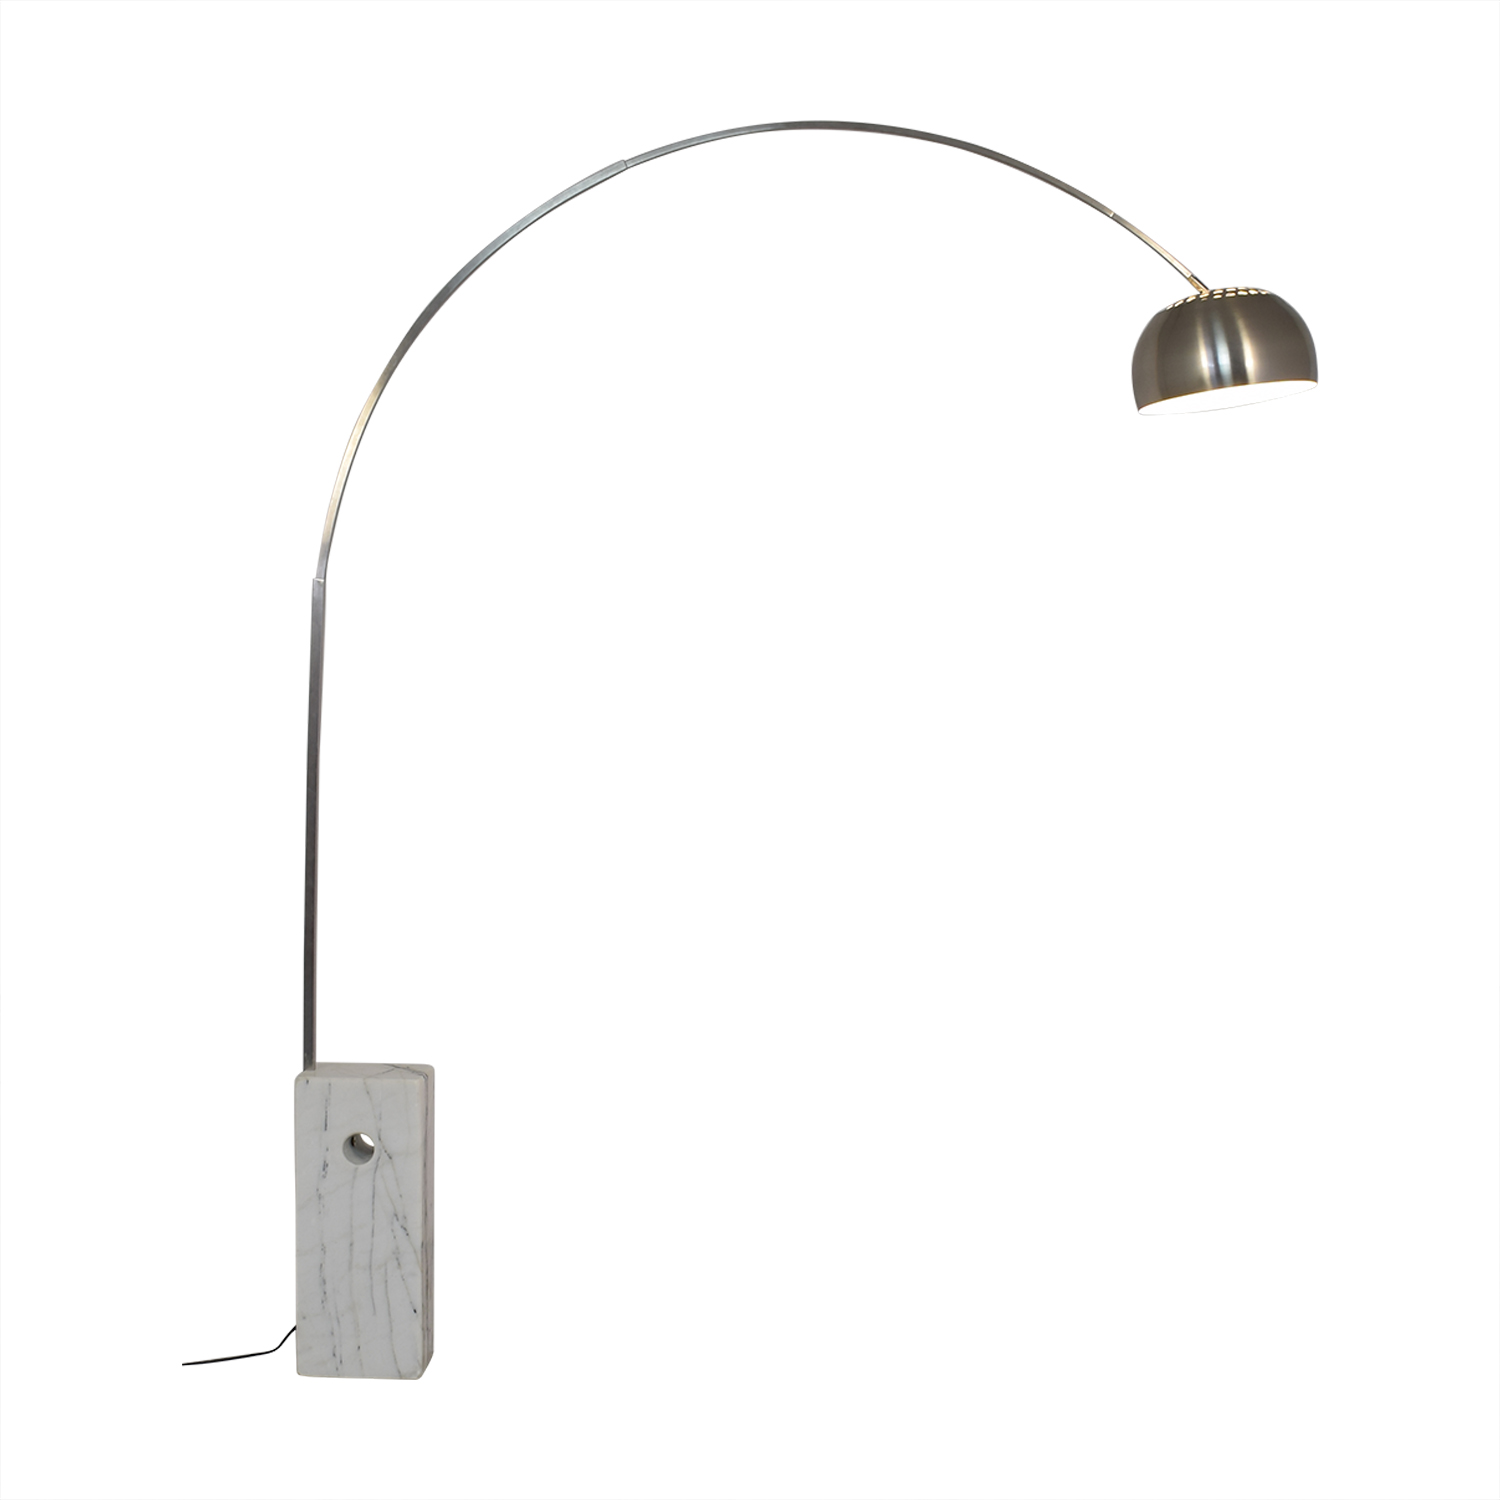 France and Son France and Son Cora Arc Floor Light coupon